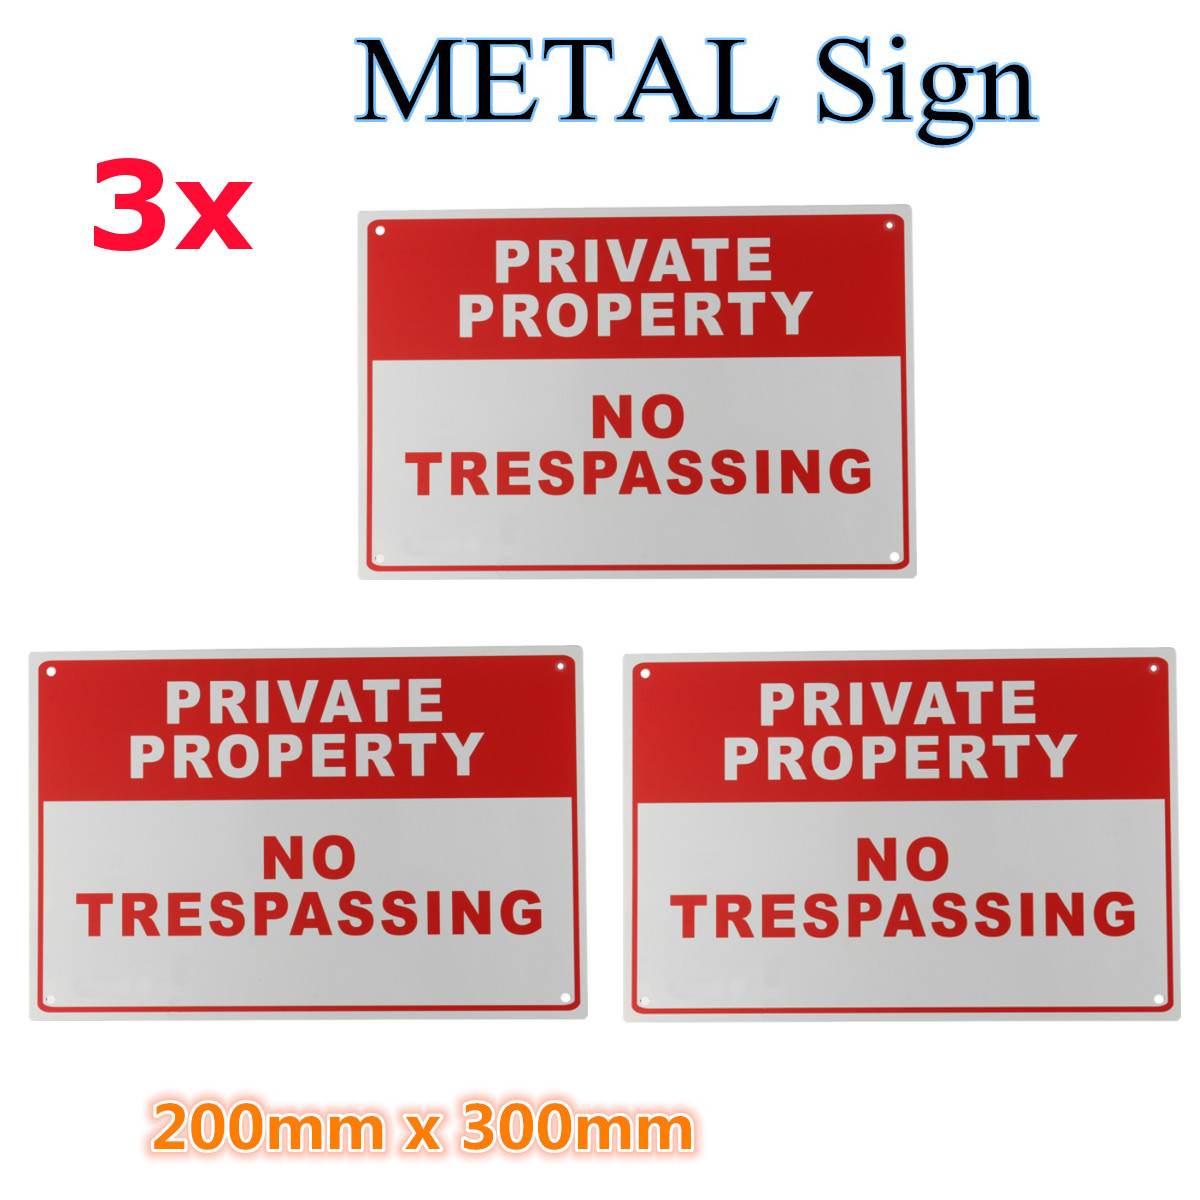 3pcs Private Property No Trespassing Metal Safety Warning Sign 200x300mm Material3pcs Private Property No Trespassing Metal Safety Warning Sign 200x300mm Material